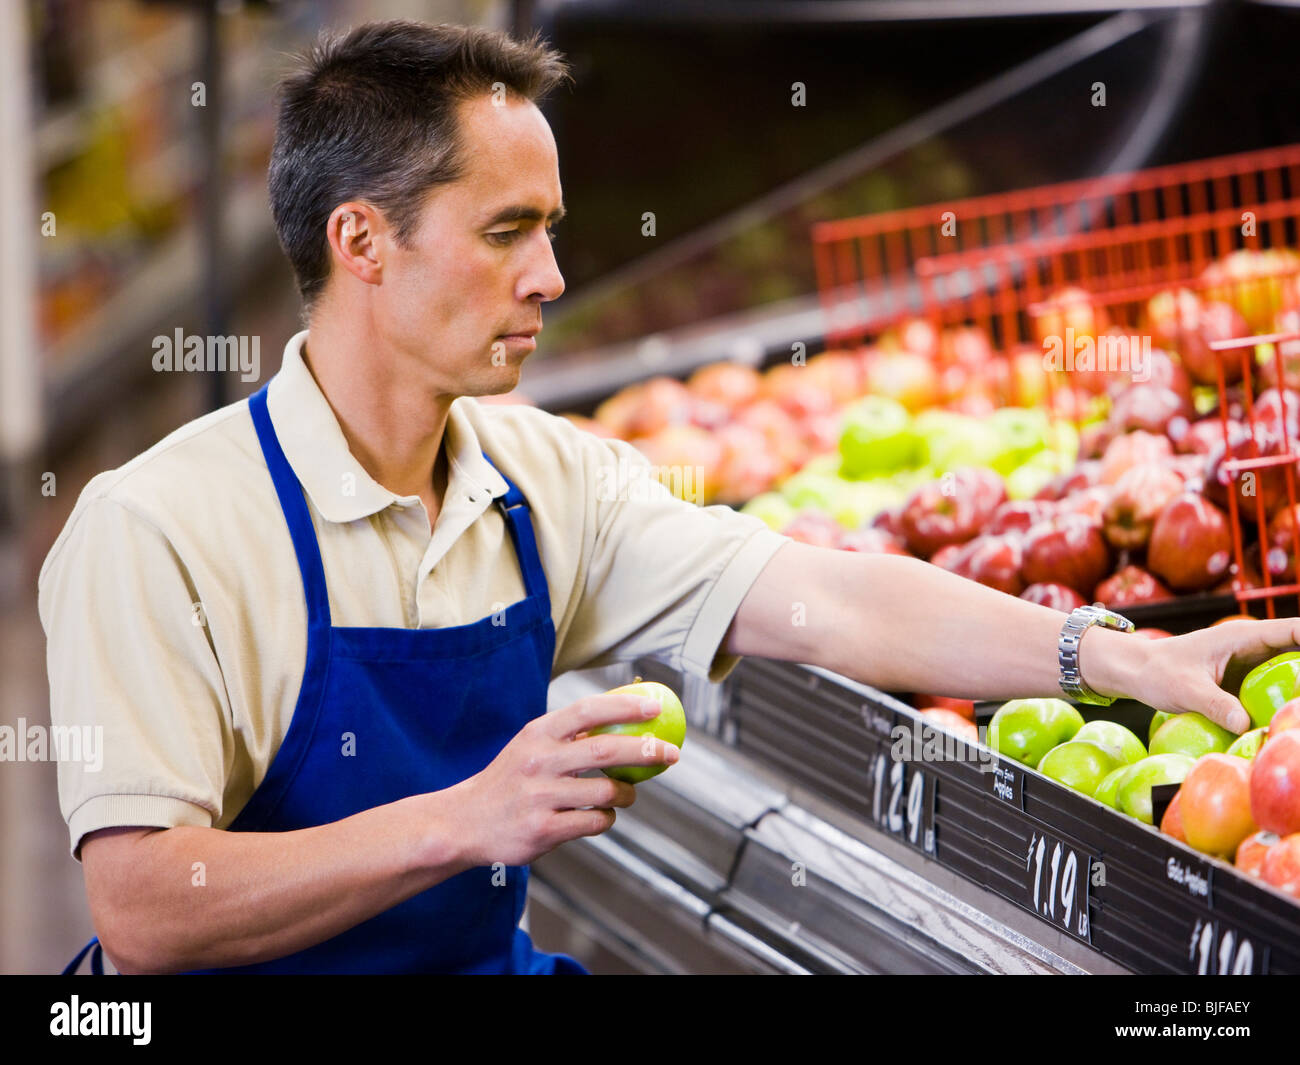 grocery clerk - Stock Image